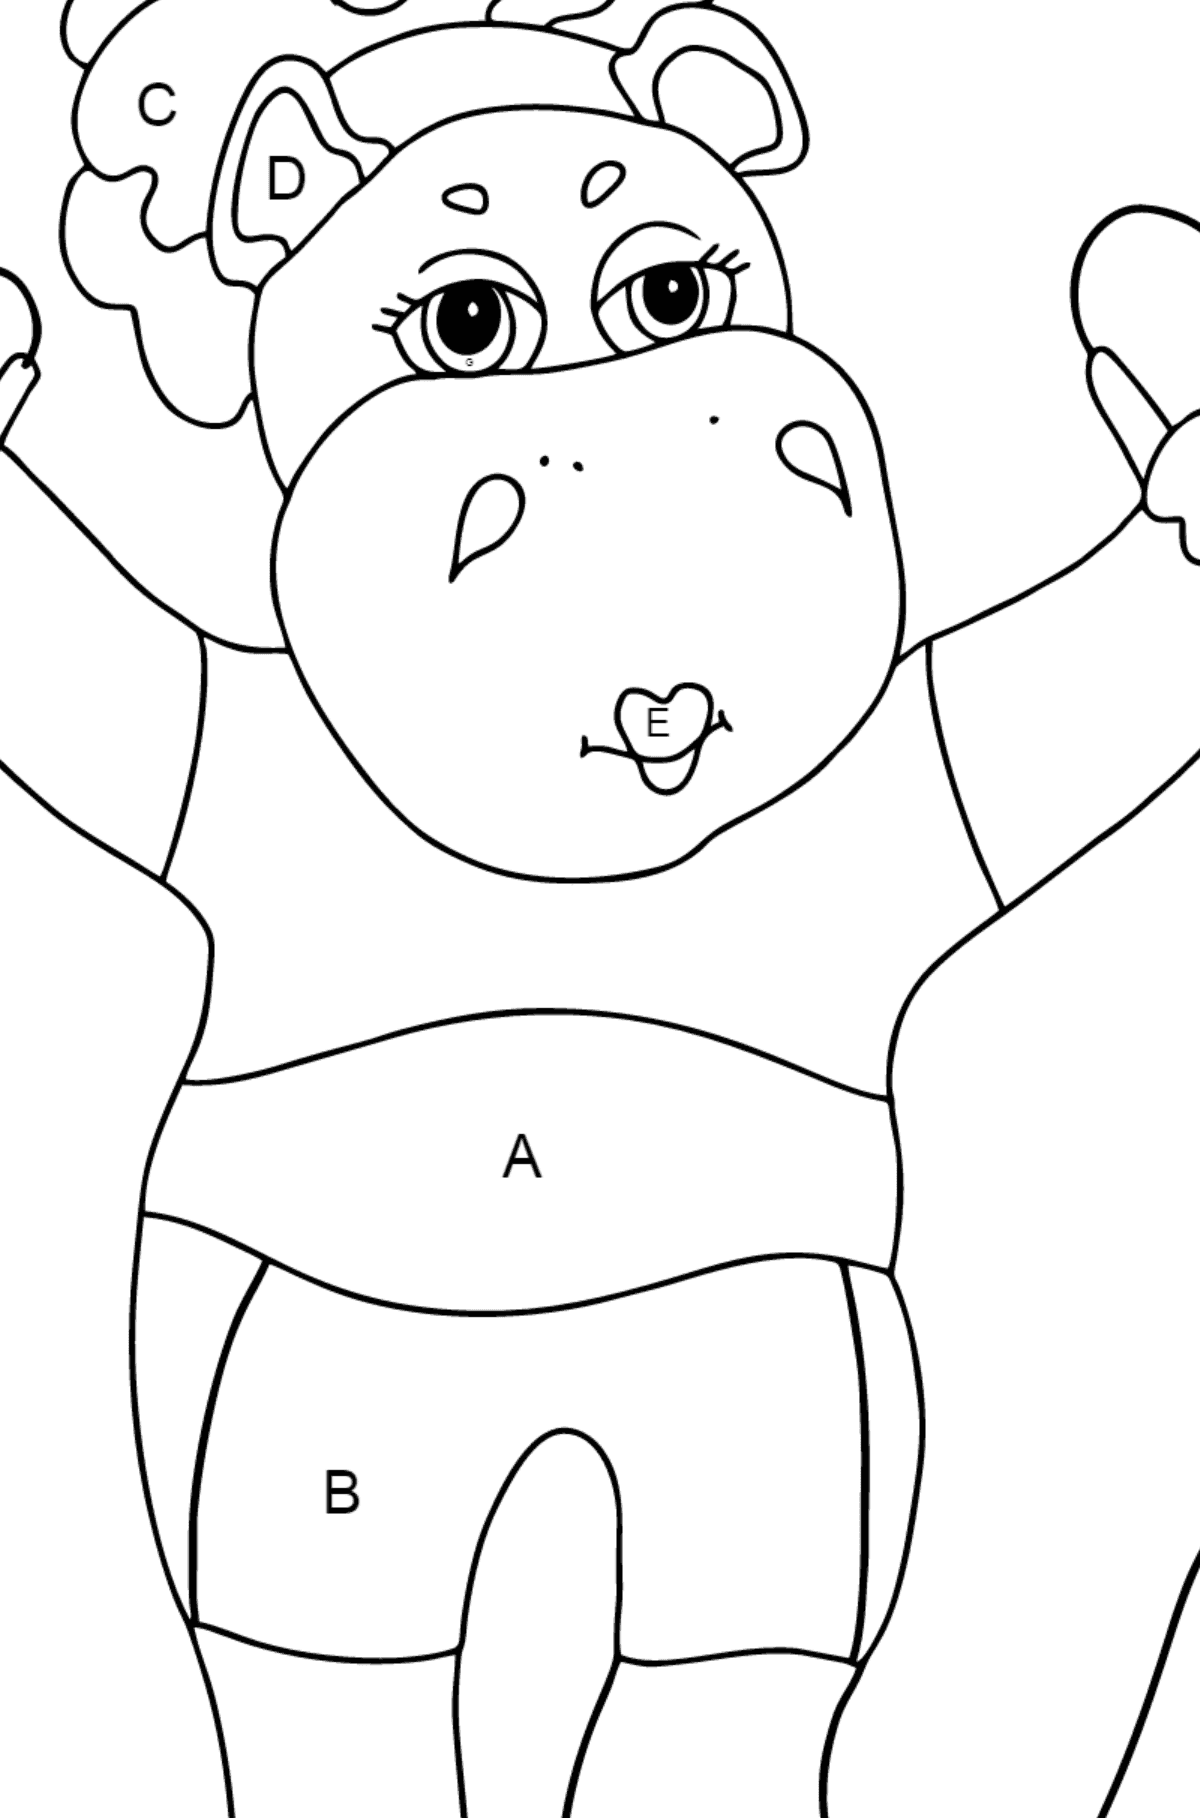 Coloring Page - A Hippo with a Jump Rope for Kids  - Color by Letters